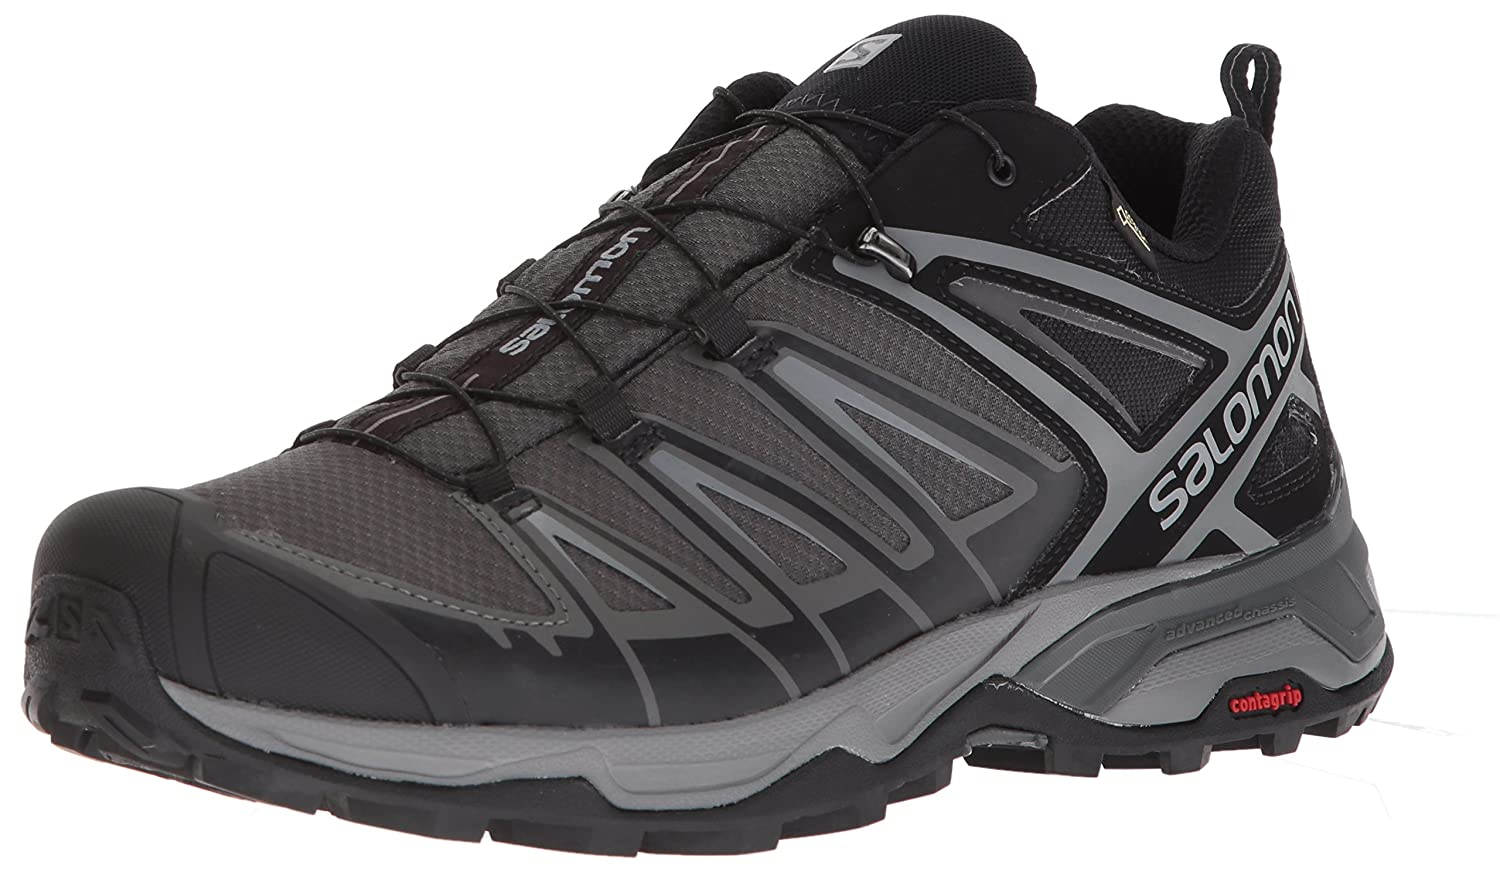 Salomon Mens X Ultra 3 GTX Hiking Shoes  B073K2VC5F